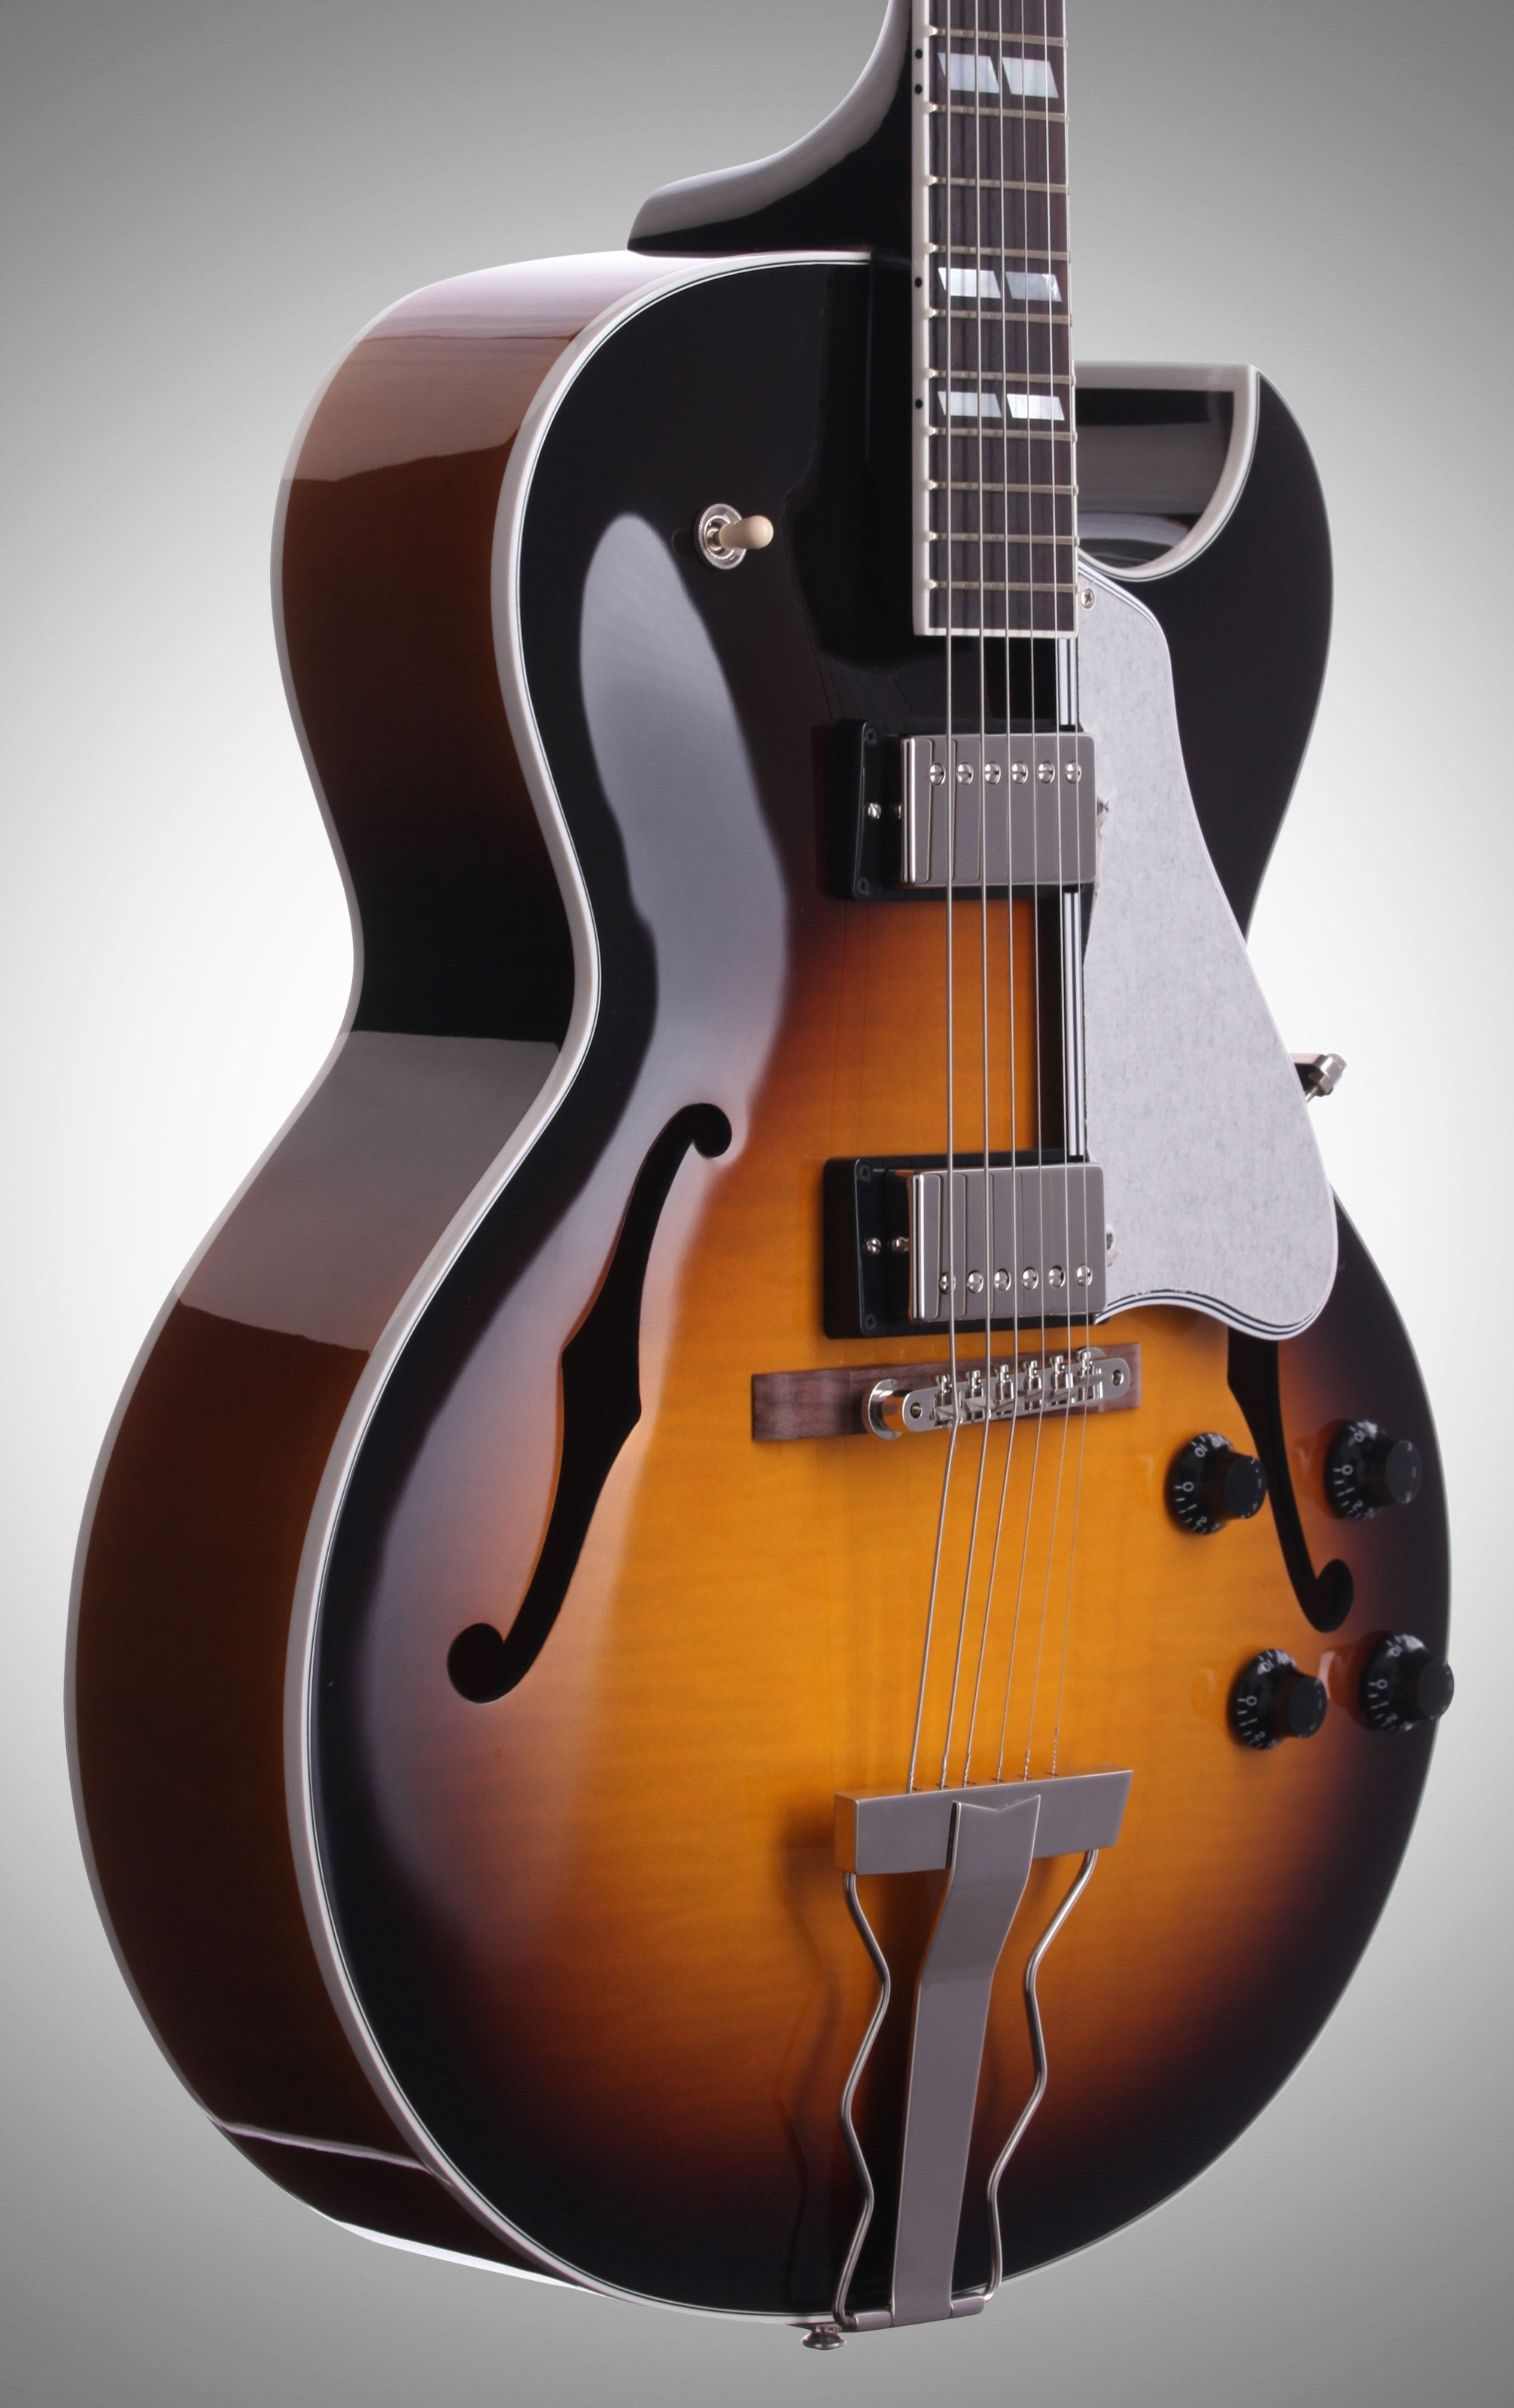 gibson es 175 hollowbody electric guitar shared by the lewis hamilton band https www. Black Bedroom Furniture Sets. Home Design Ideas